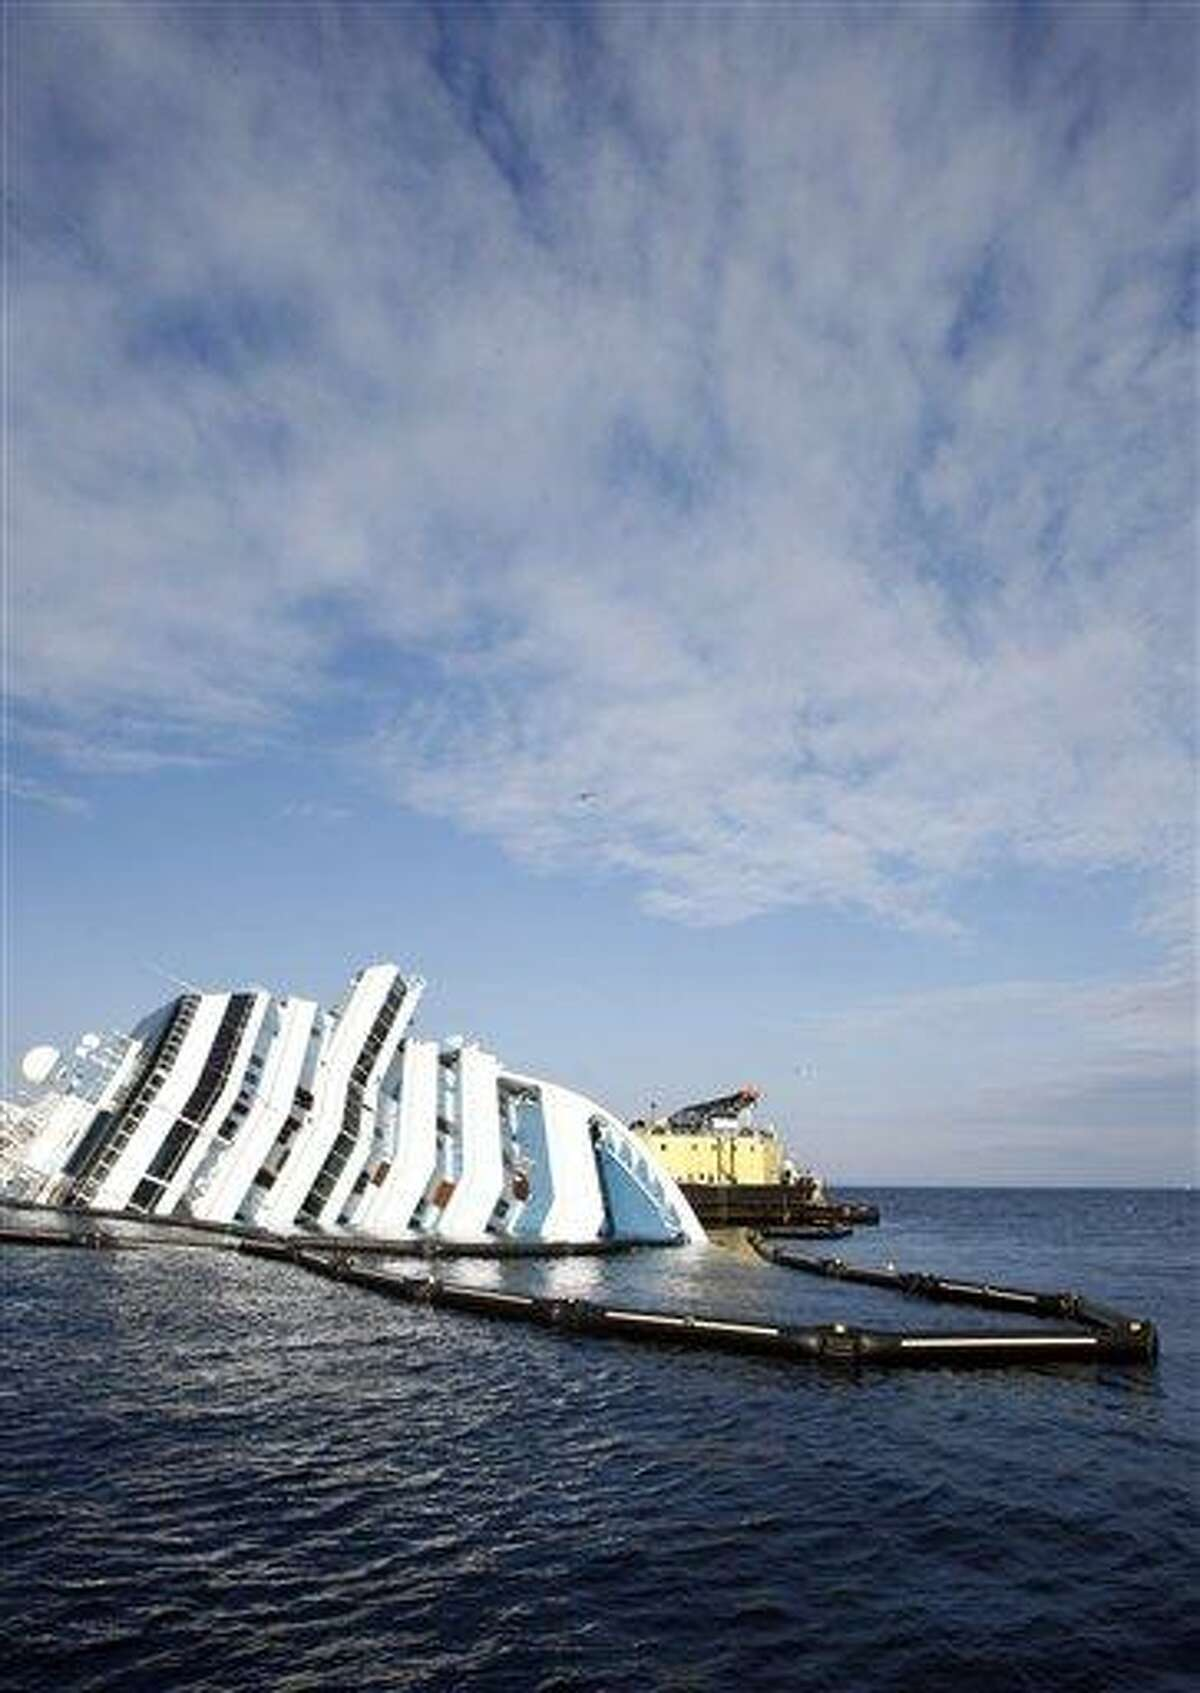 An anti-oil spilling barrier floats around the grounded cruise ship Costa Concordia off the Tuscan island of Giglio, Italy, this week. The Concordia ran aground Jan. 13 after the captain deviated from his planned route and gashed the hull of the ship on a reef. The ship contains about 500,000 gallons (2,400 tons) of heavy fuel and other pollutants. Associated Press